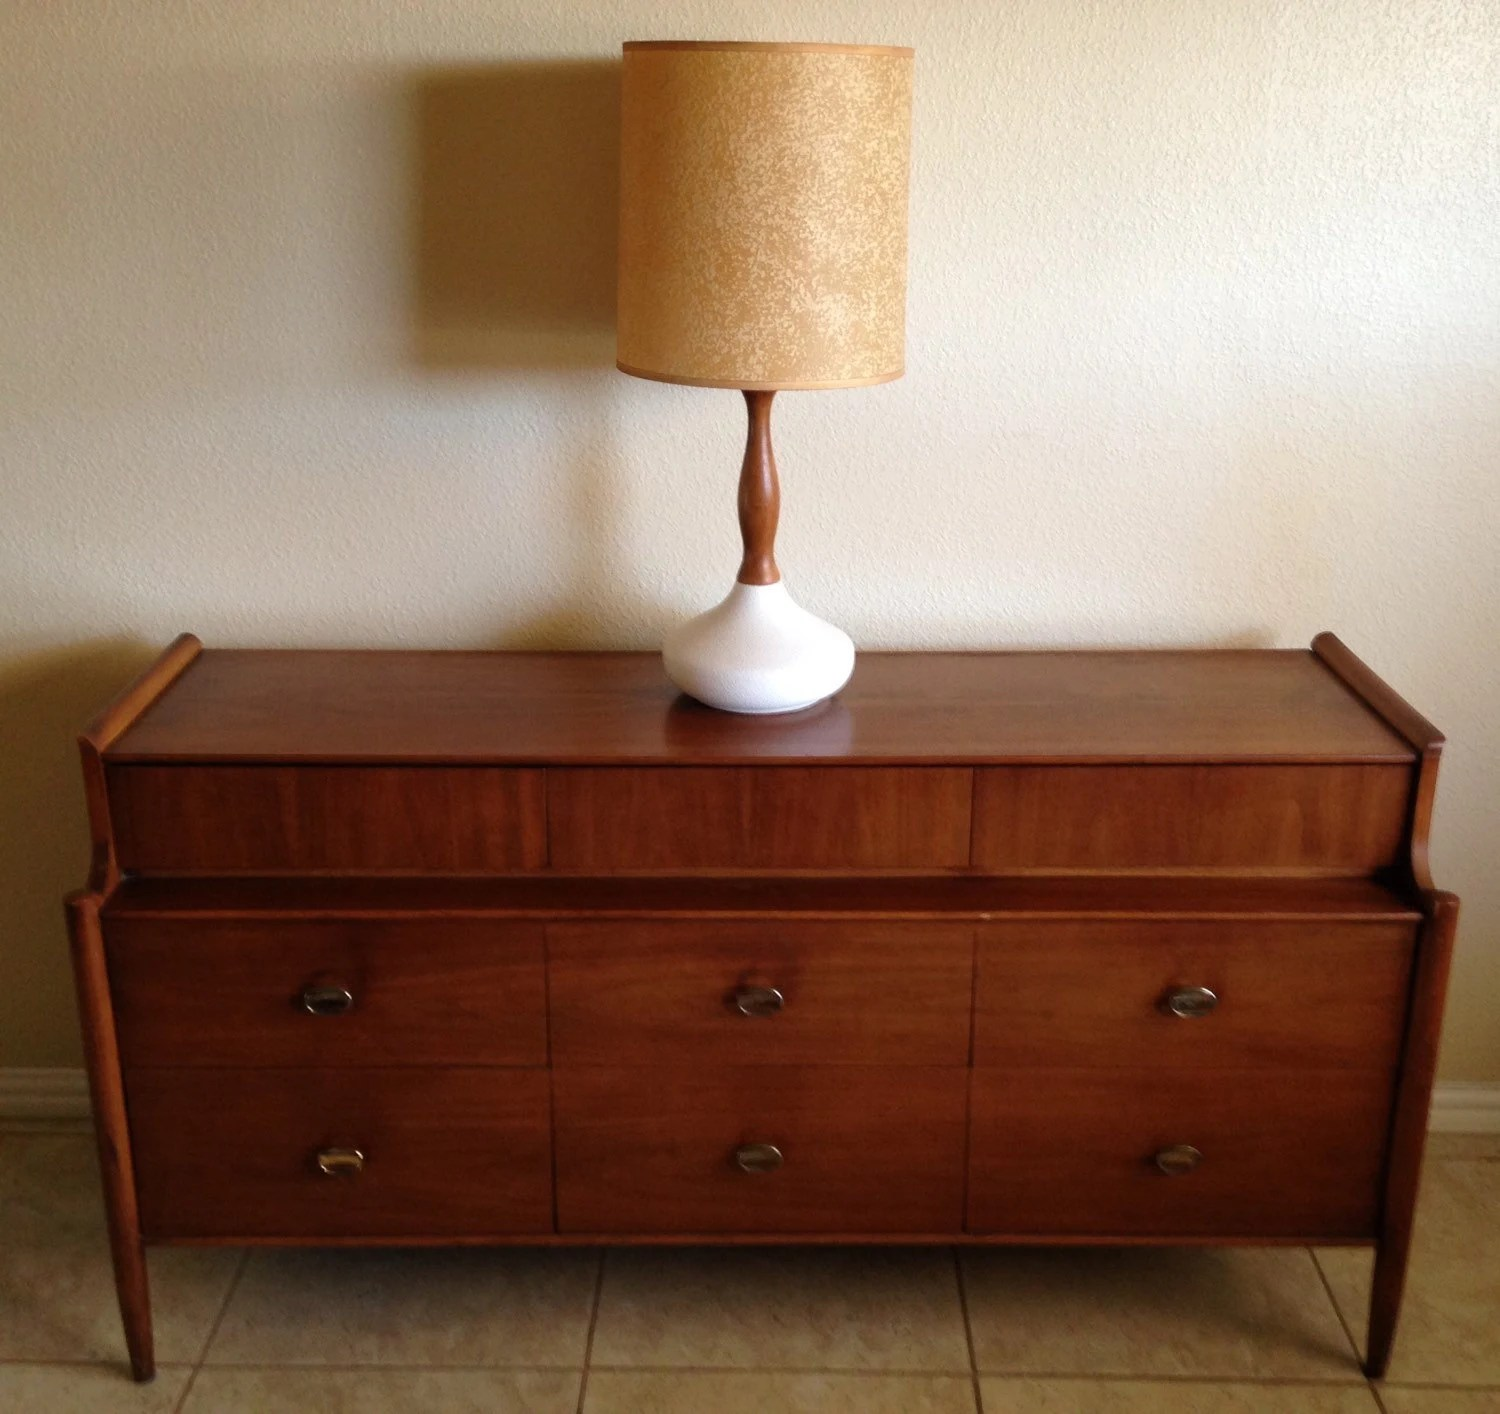 Vintage Mid Century Modern Credenza Buffet Sideboard TV Stand Duplex . Full resolution  portrait, nominally Width 1500 Height 1414 pixels, portrait with #3E1809.